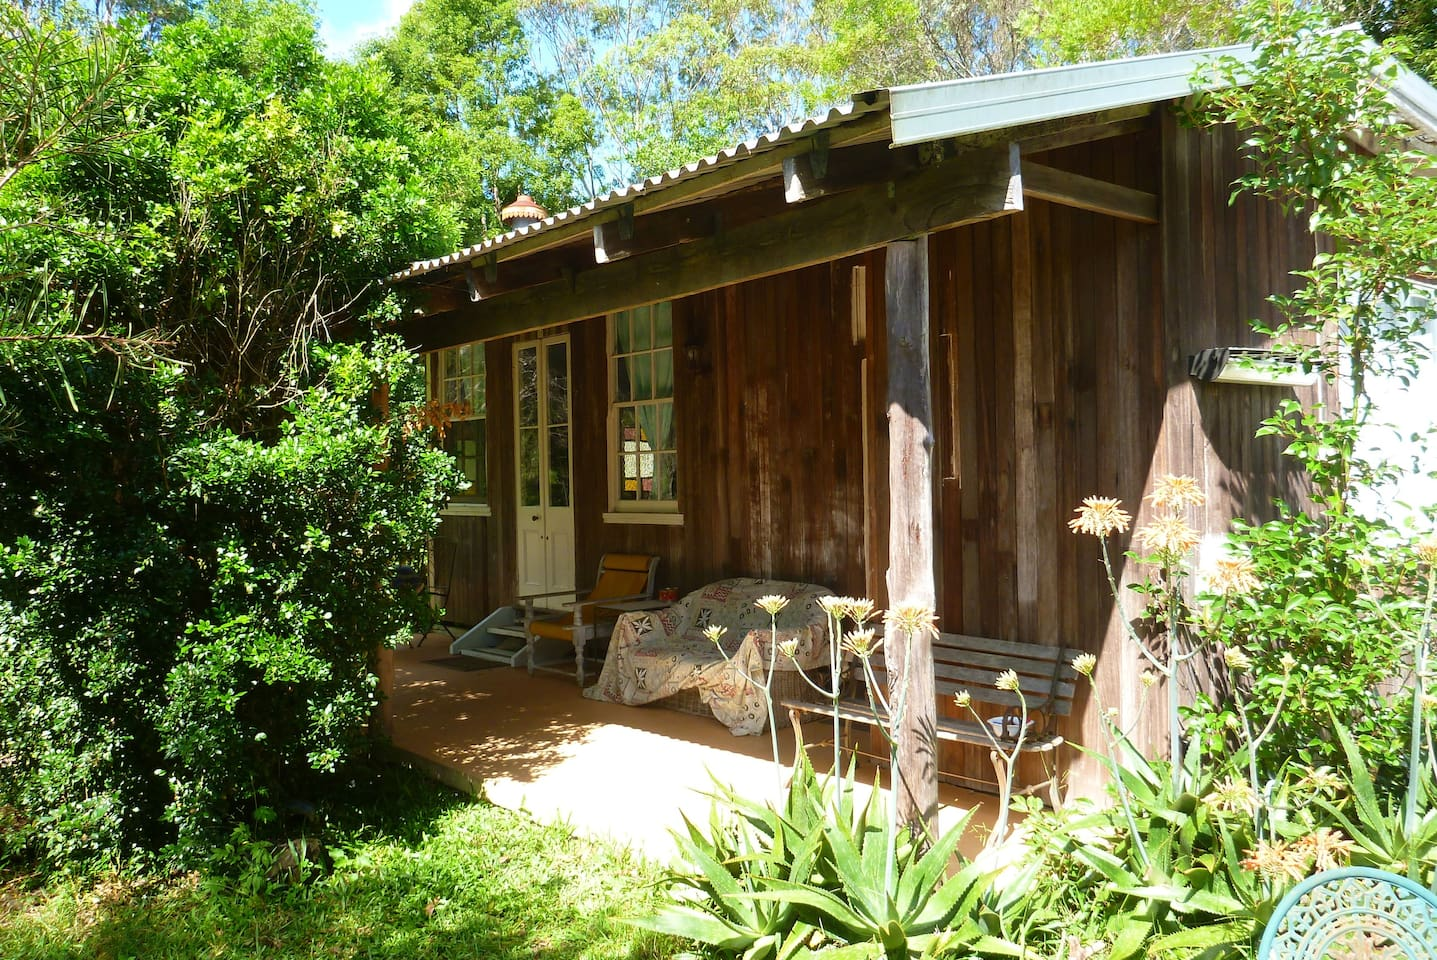 Rustic Bottlebrush cottage is a rare find in a modern world, a great place to step back in time.